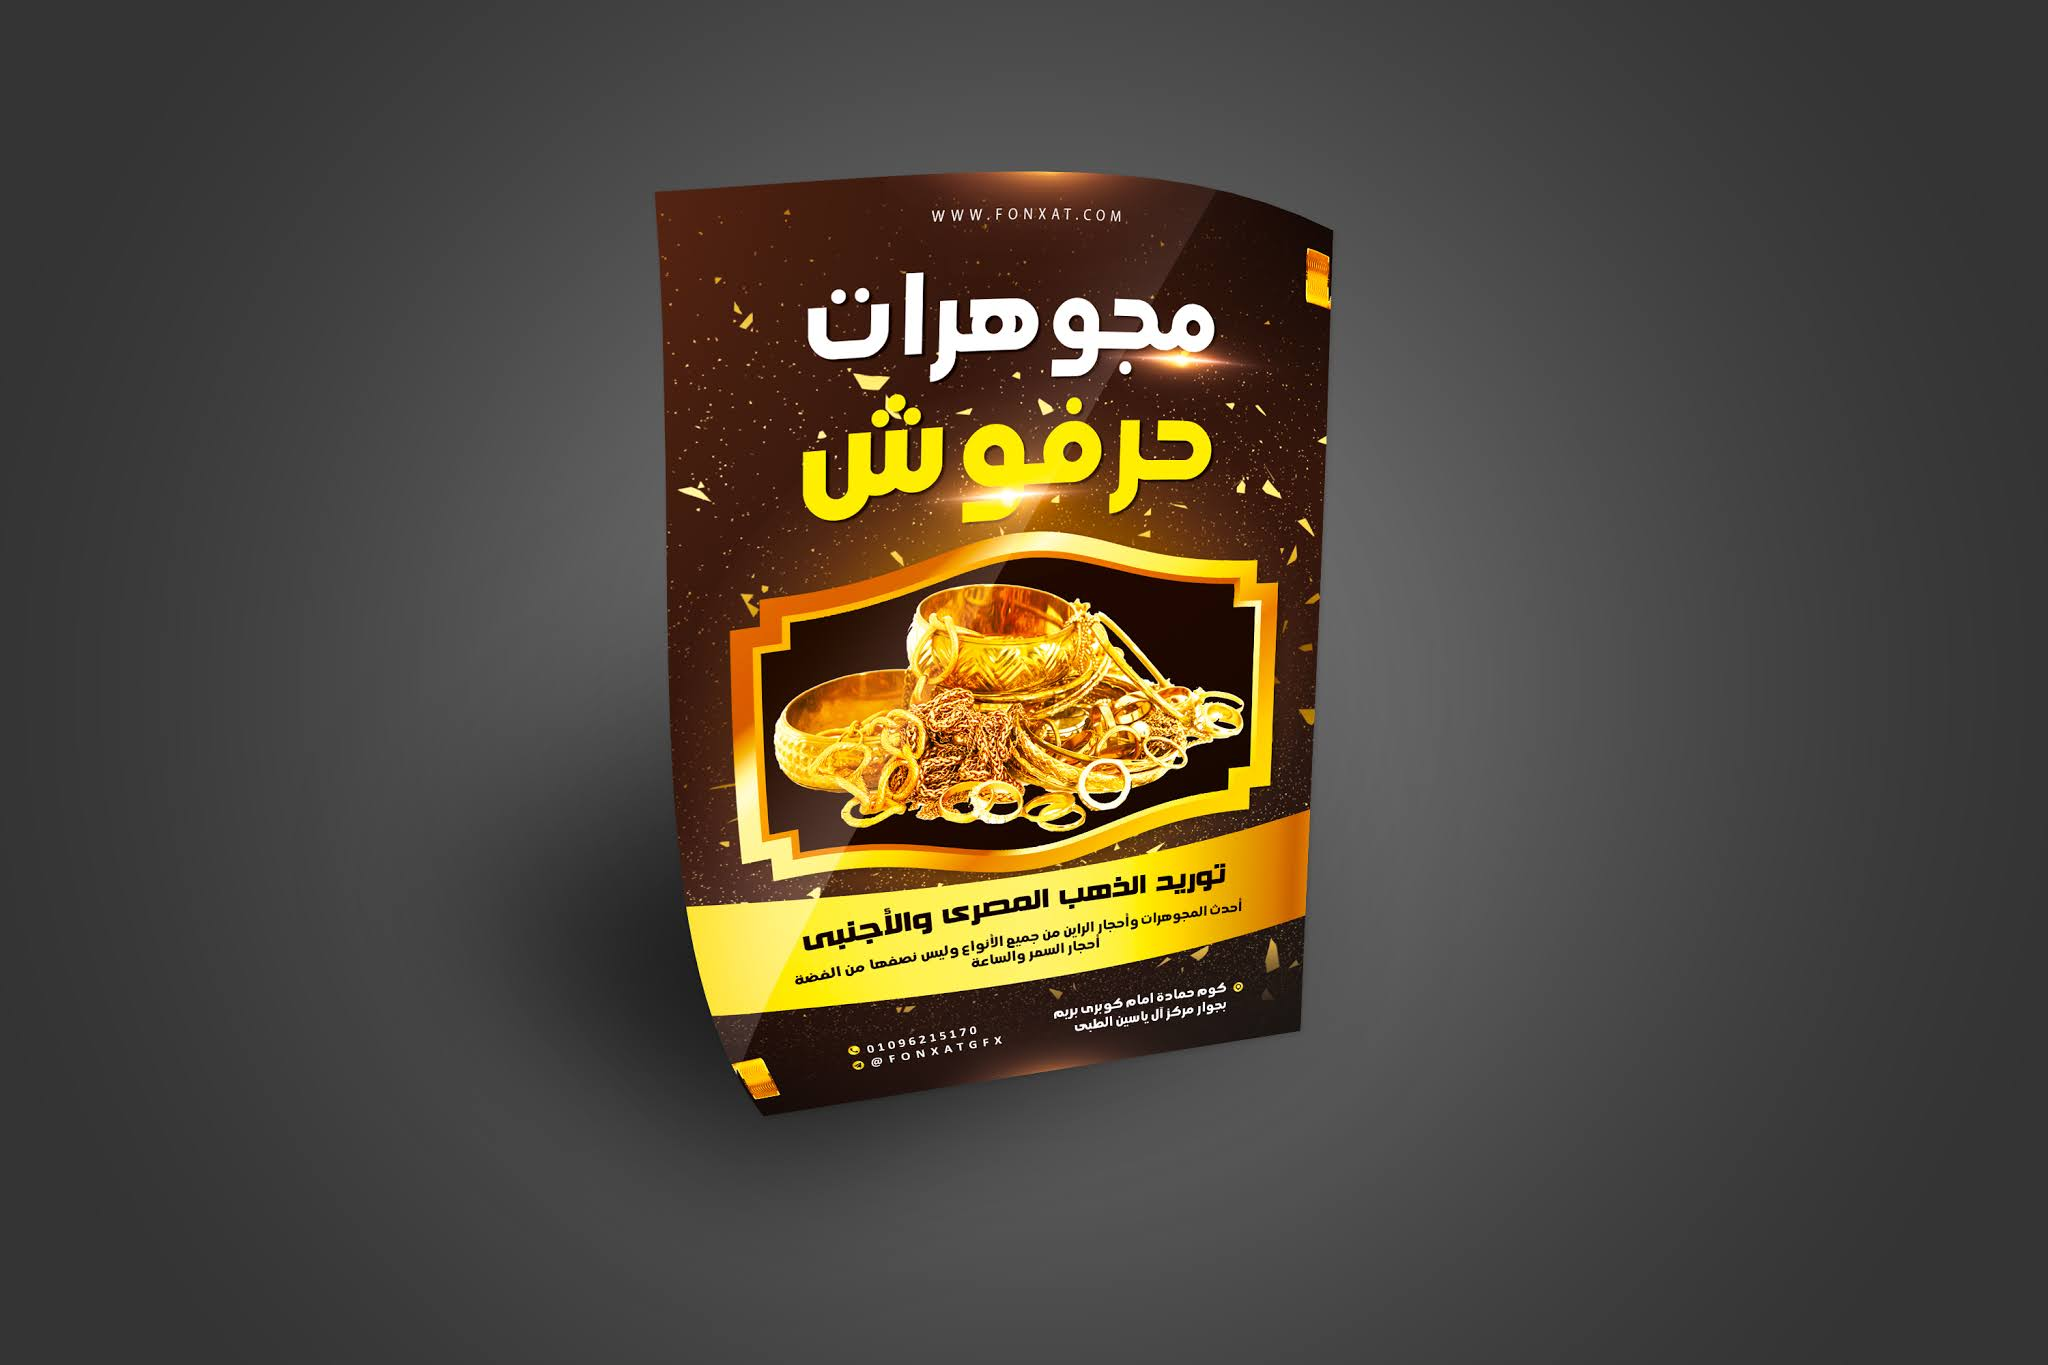 Special professional PSD flyer design for jewelry and silverware